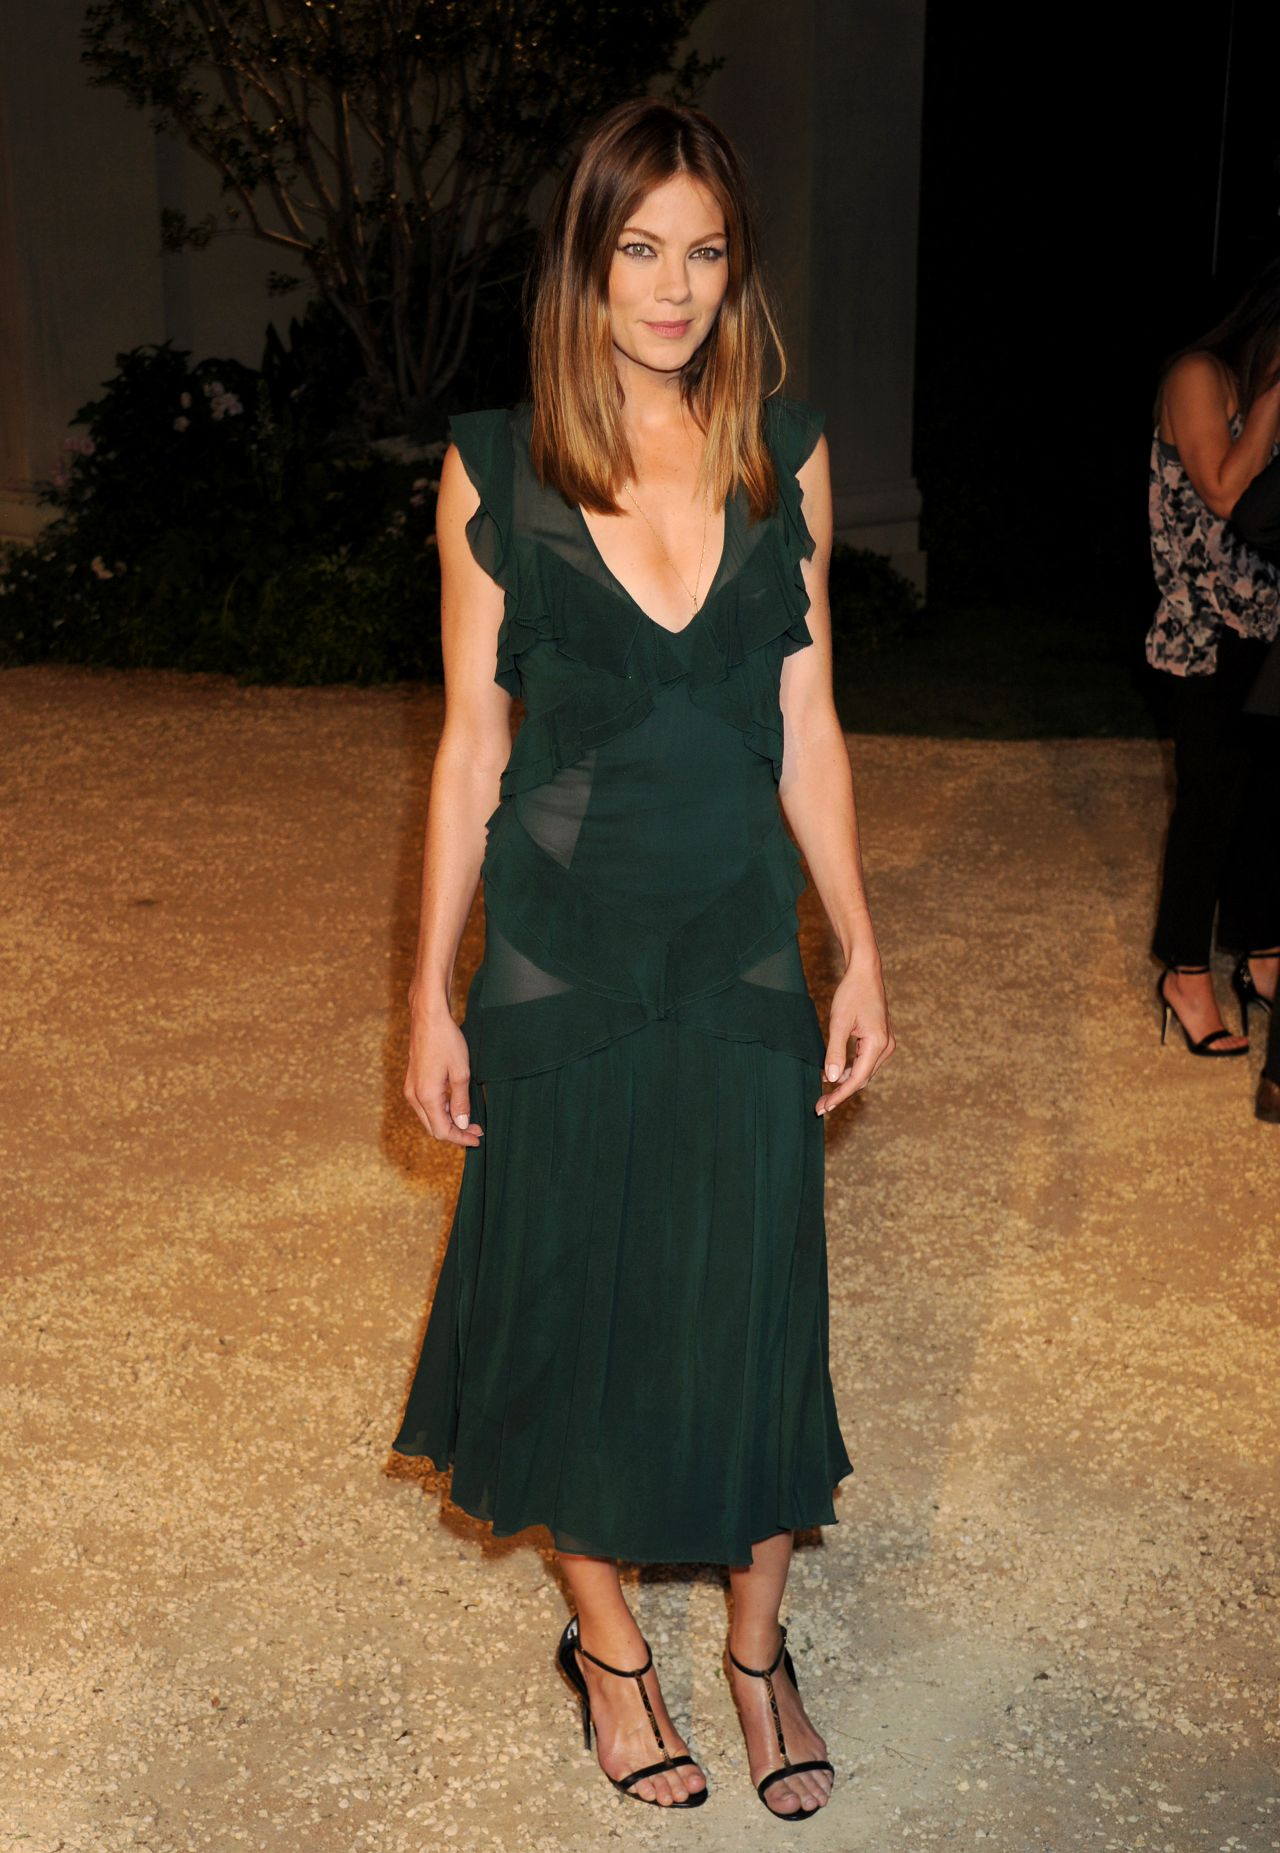 michelle-monaghan-burberry-s-london-in-los-angeles-party-in-los-angeles-april-2015_